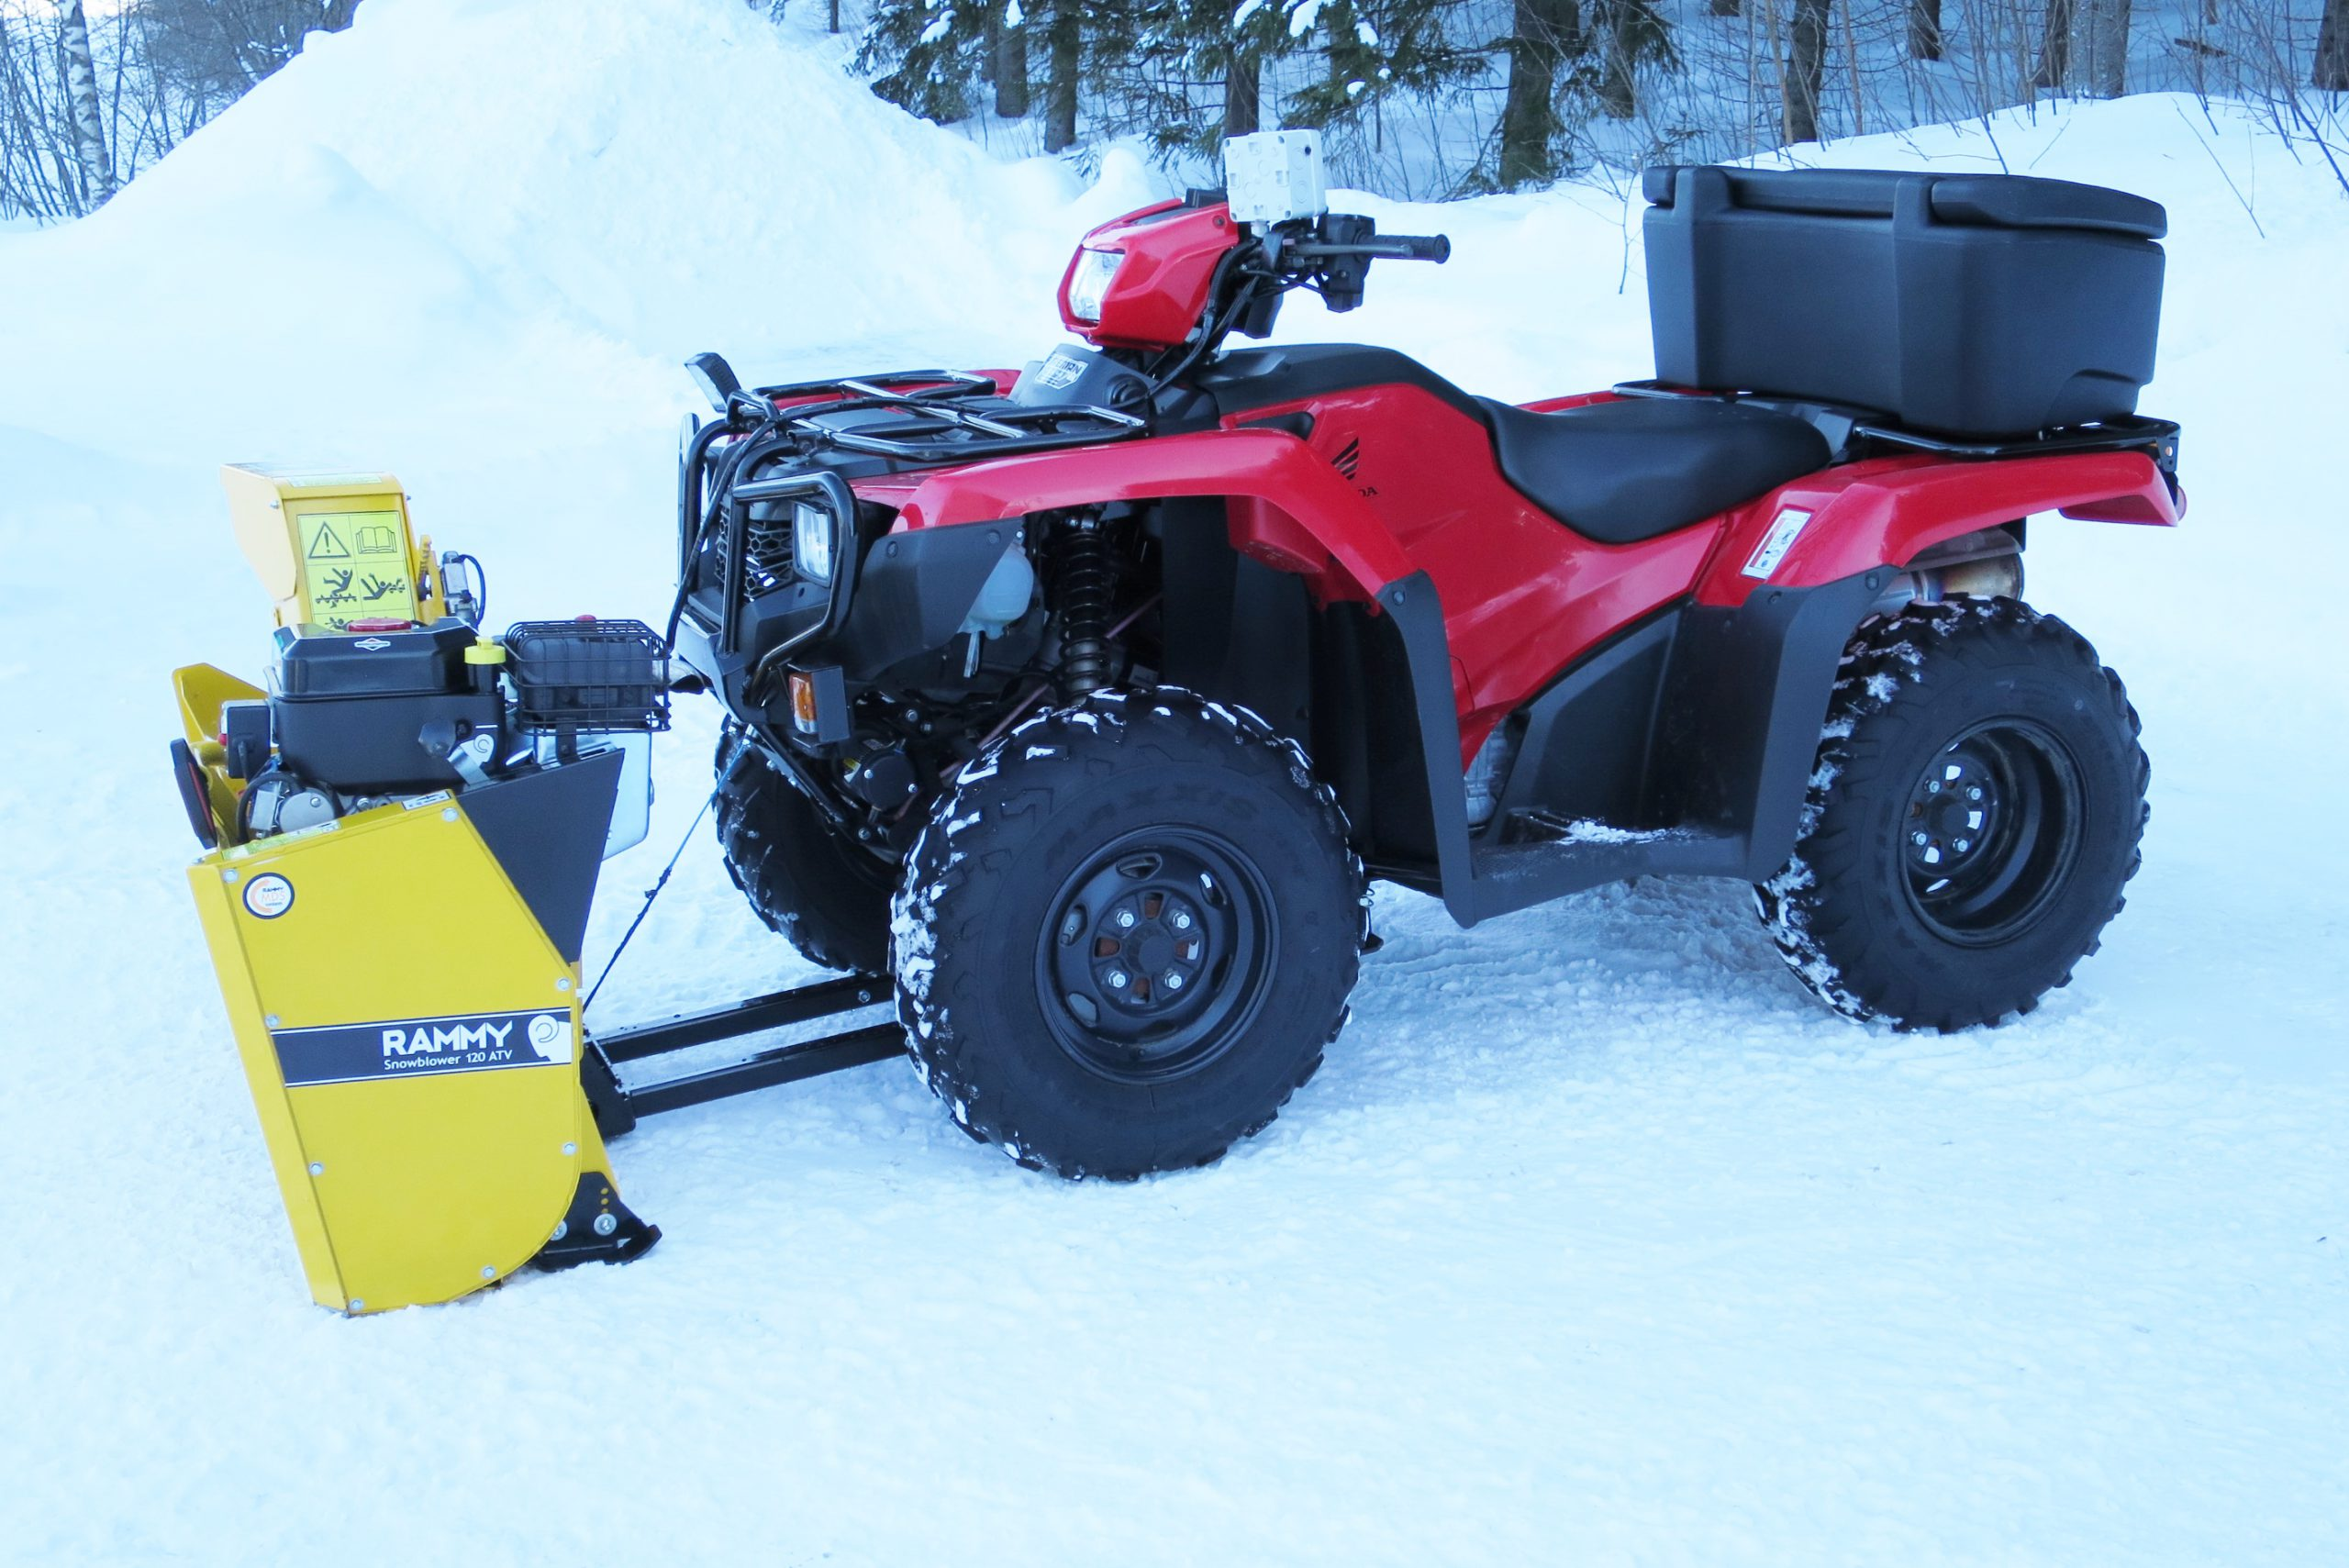 RAMMY Snowblower 120 ATV - Rammy